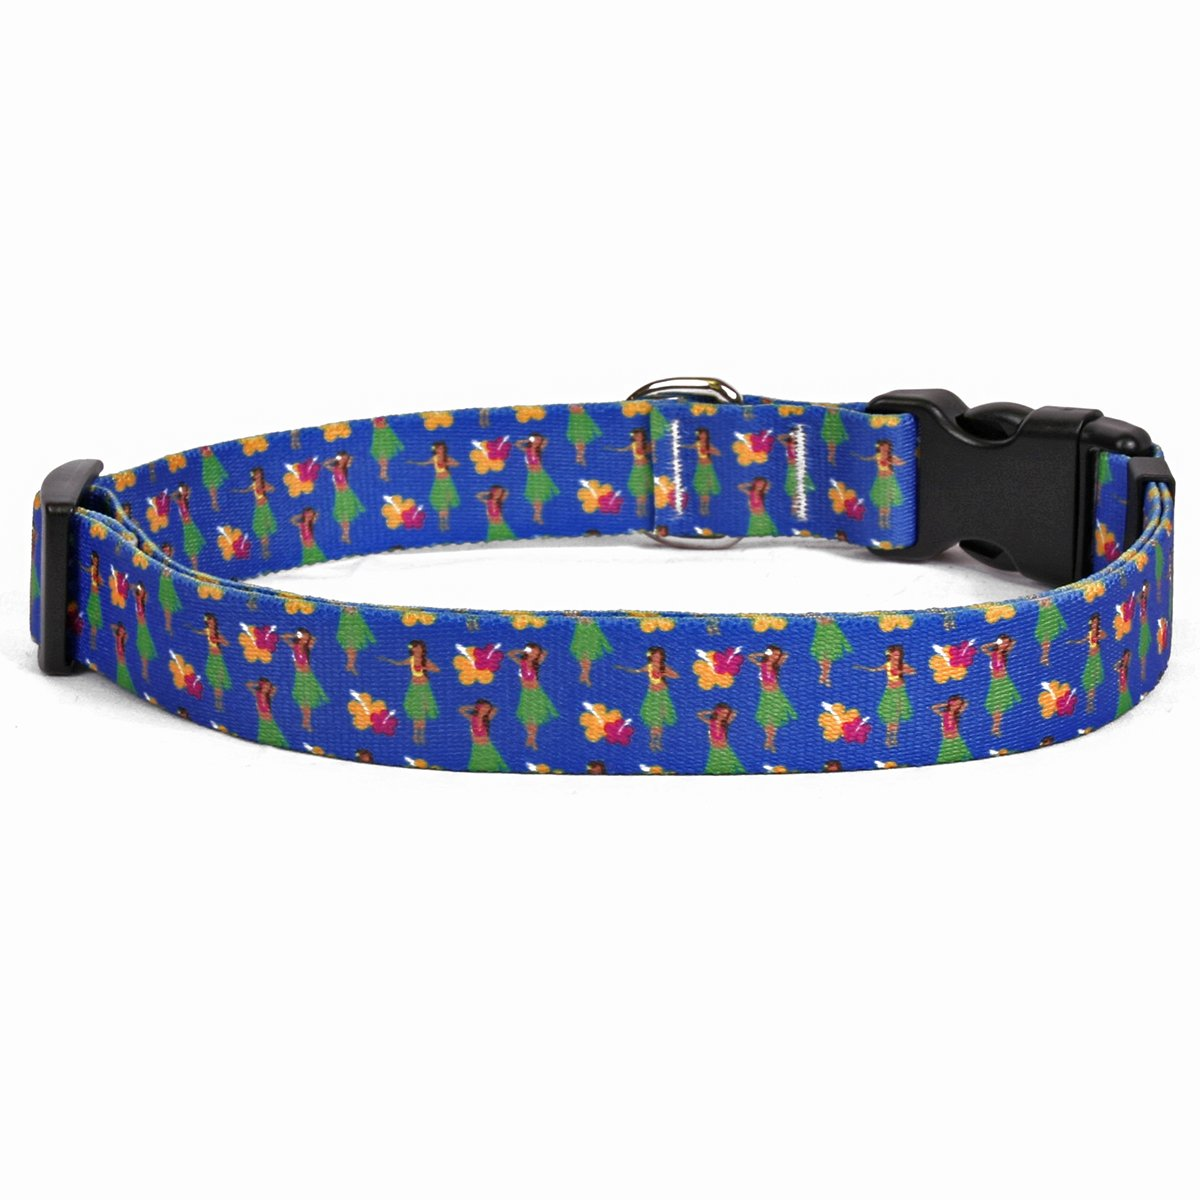 Yellow Dog Design Hula Girls Dog Collar Fits Neck 14 To 20'', Medium 1'' Wide